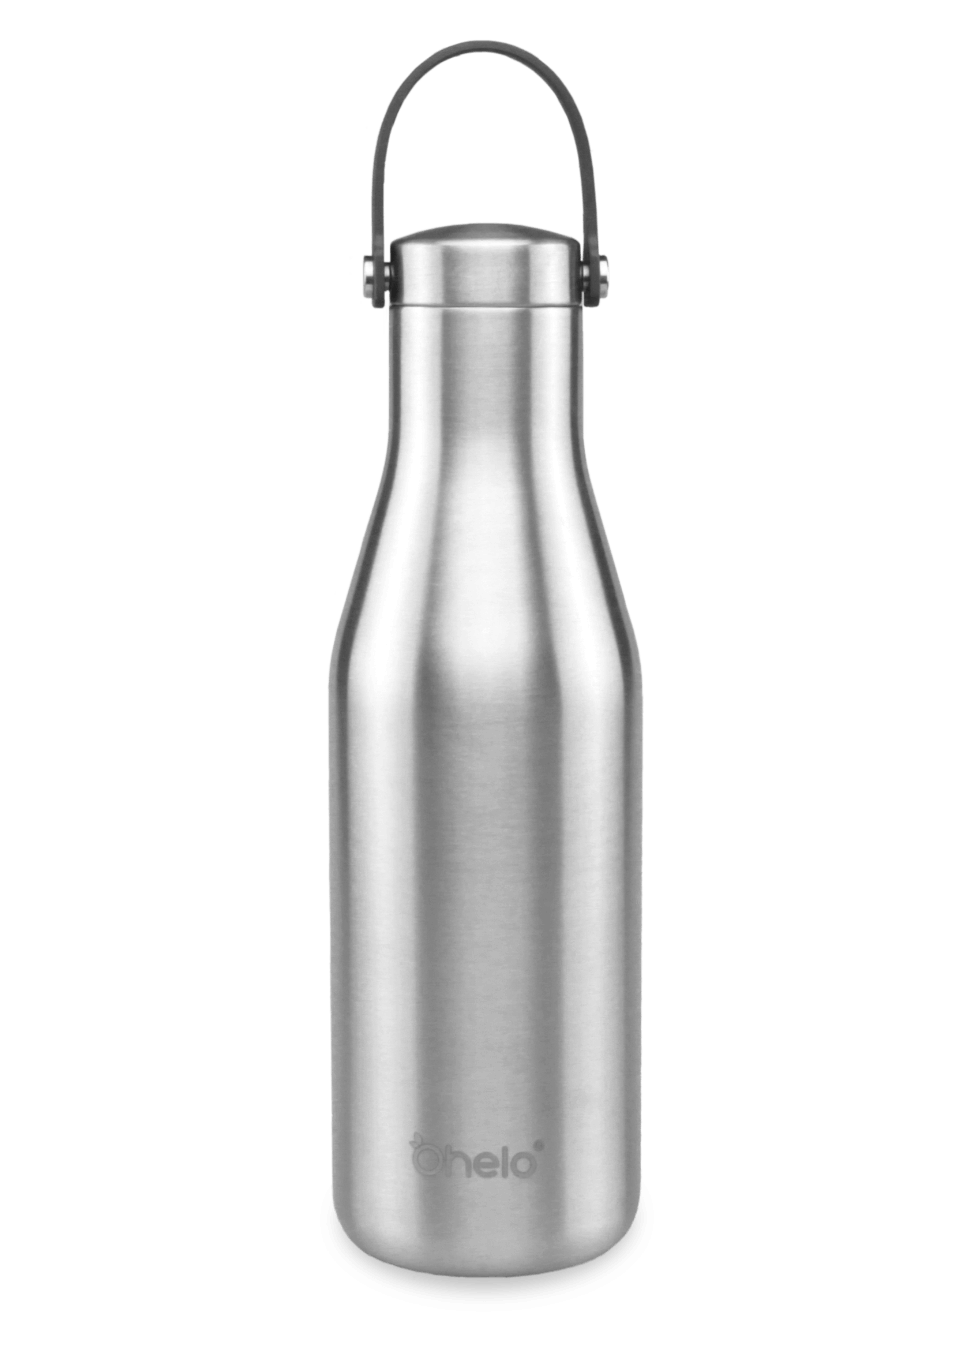 Ohelo stainless steel water bottle